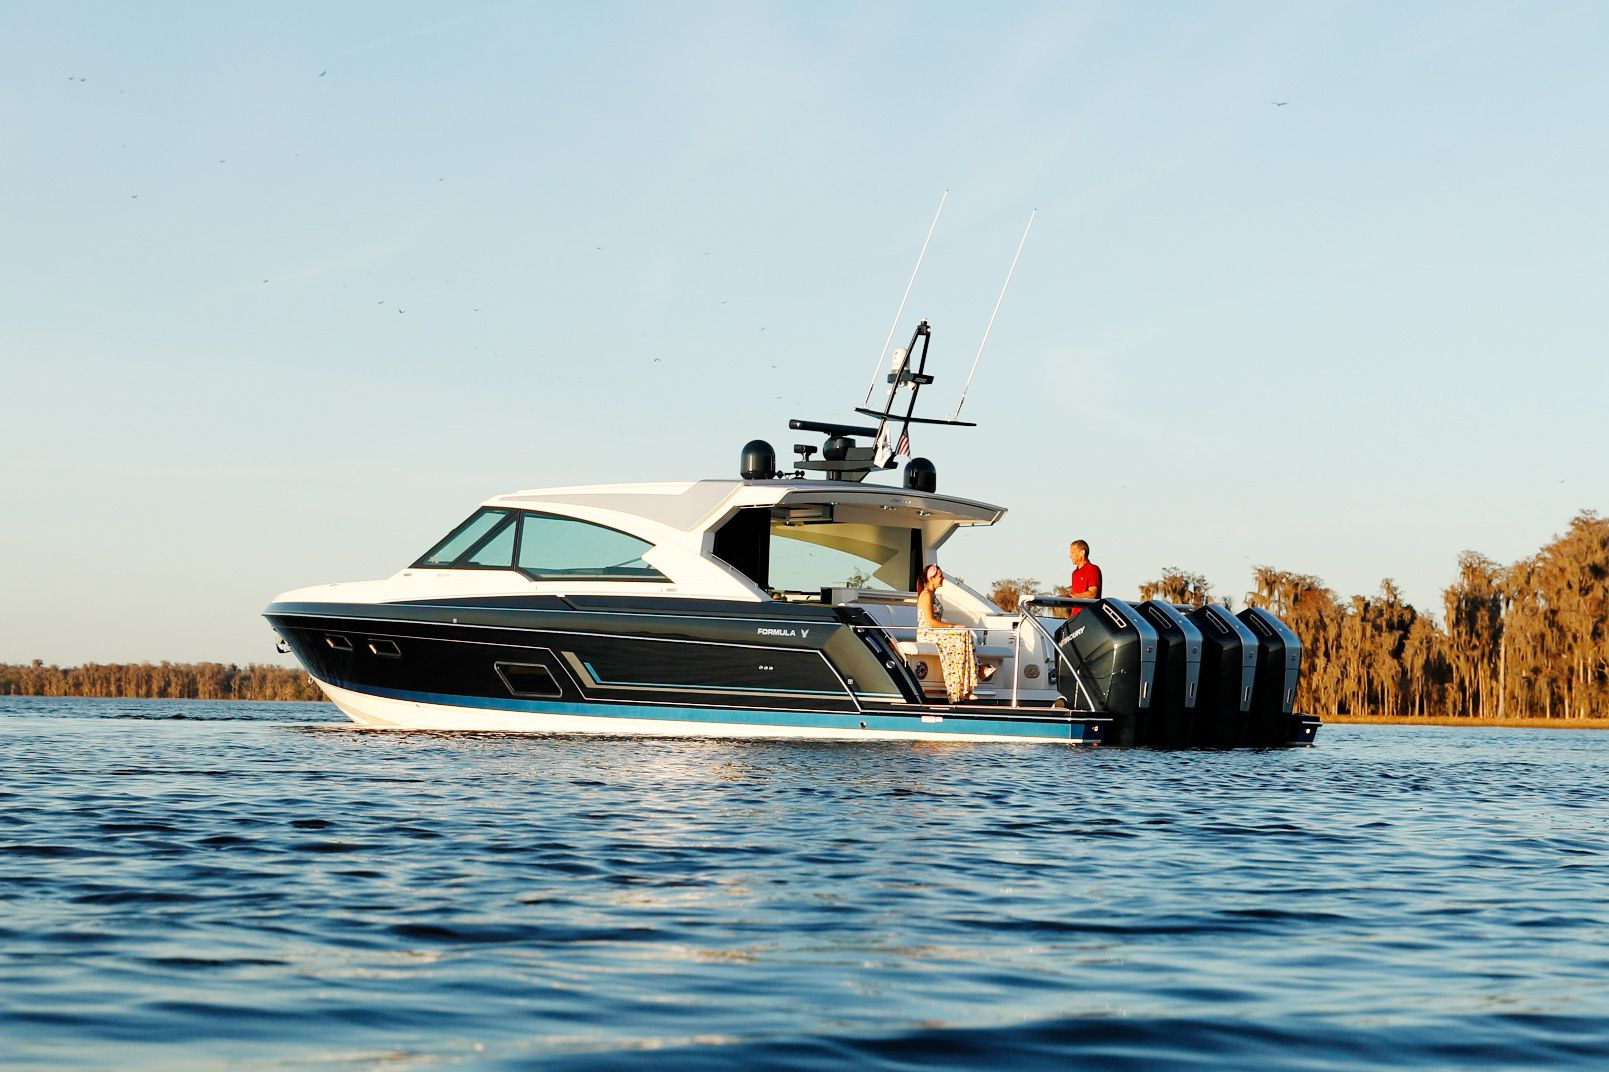 The Formula 500 Super Sport Crossover became the flagship model in the builder's line earlier this year.